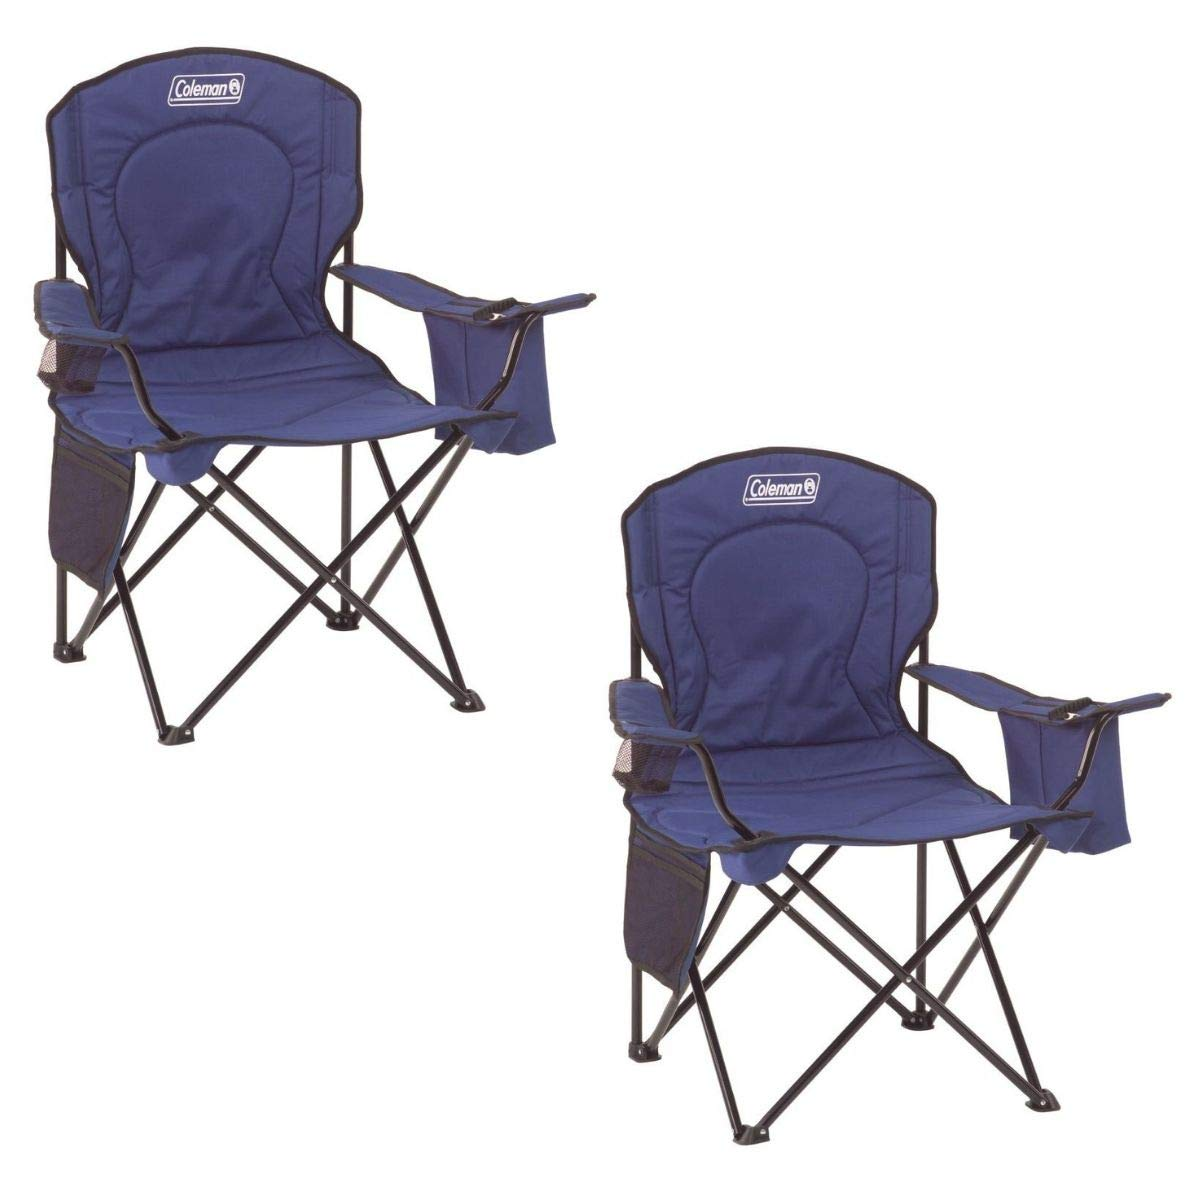 Coleman Oversized Quad Chair with Cooler Pouch (Blue/Set of 2) by Coleman